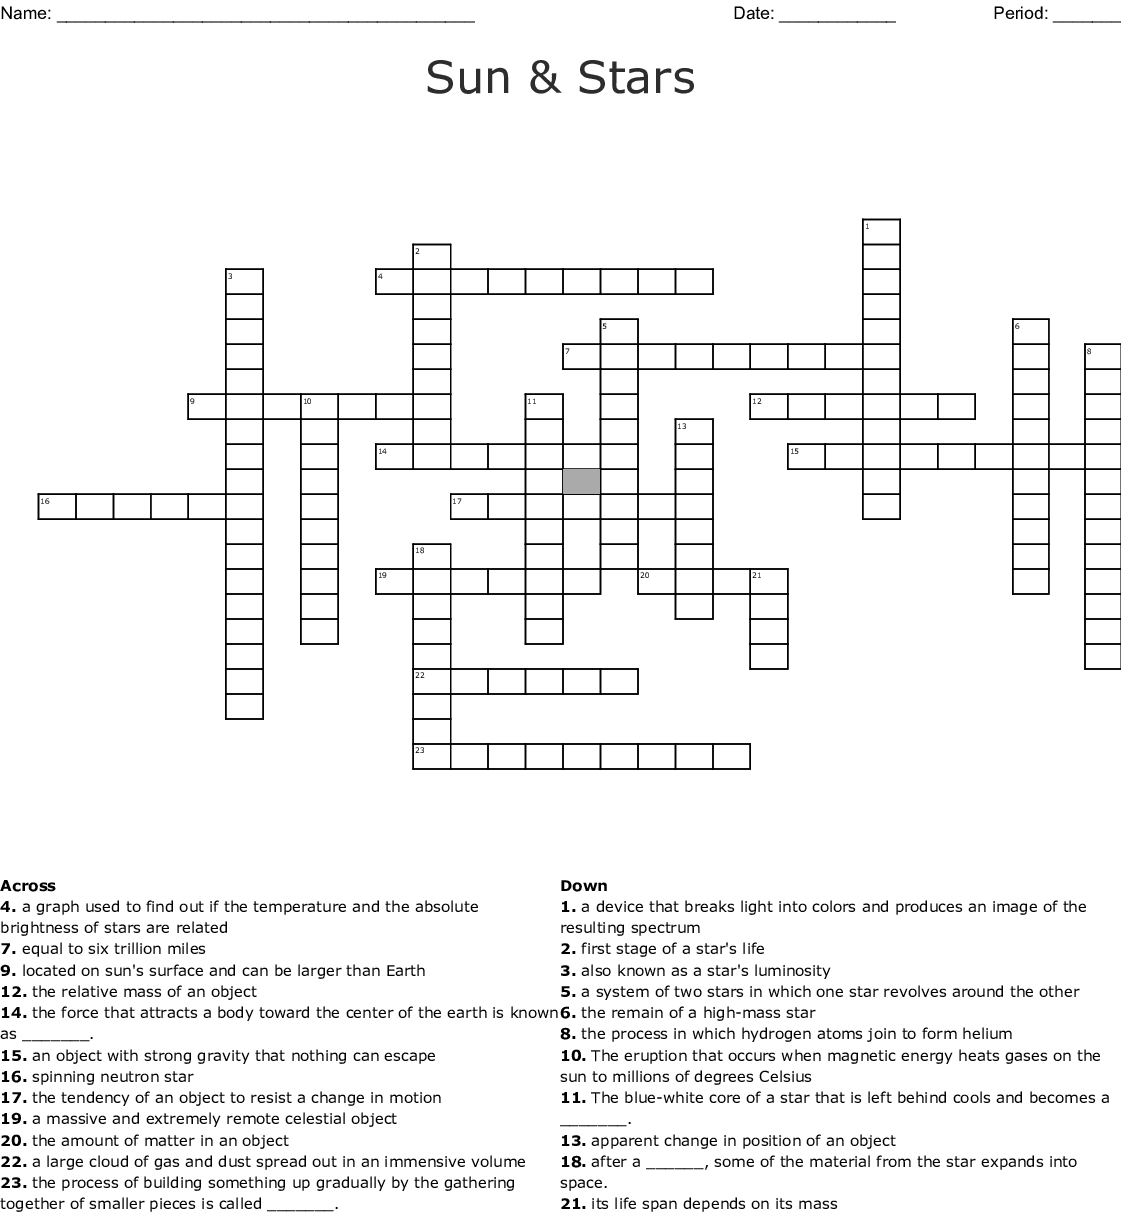 Sun & Stars Crossword - Wordmint - Printable Sun Crossword